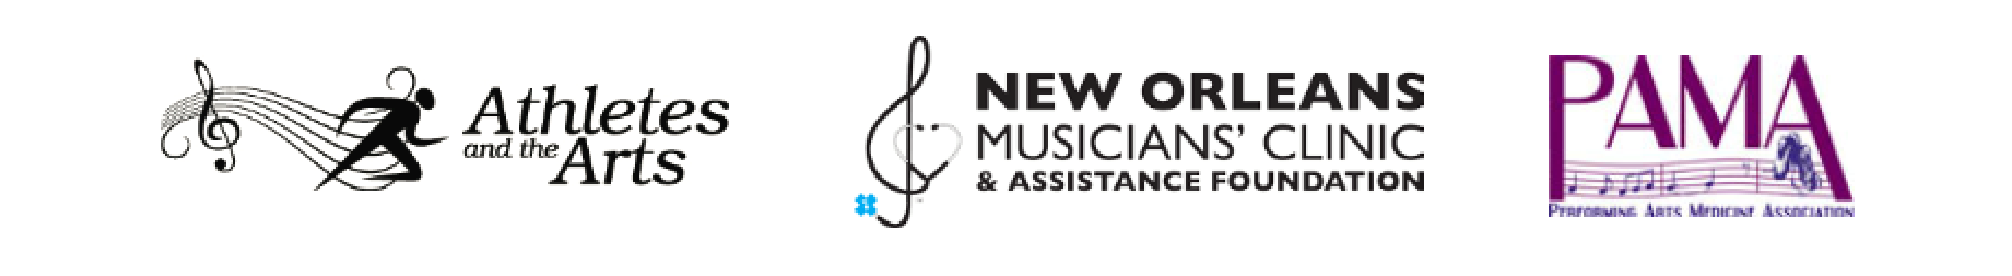 Logos for Athletes and the Arts, New Orleans Musicians' Clinic & Assistance Foundation, and Performing Arts Medicine Association